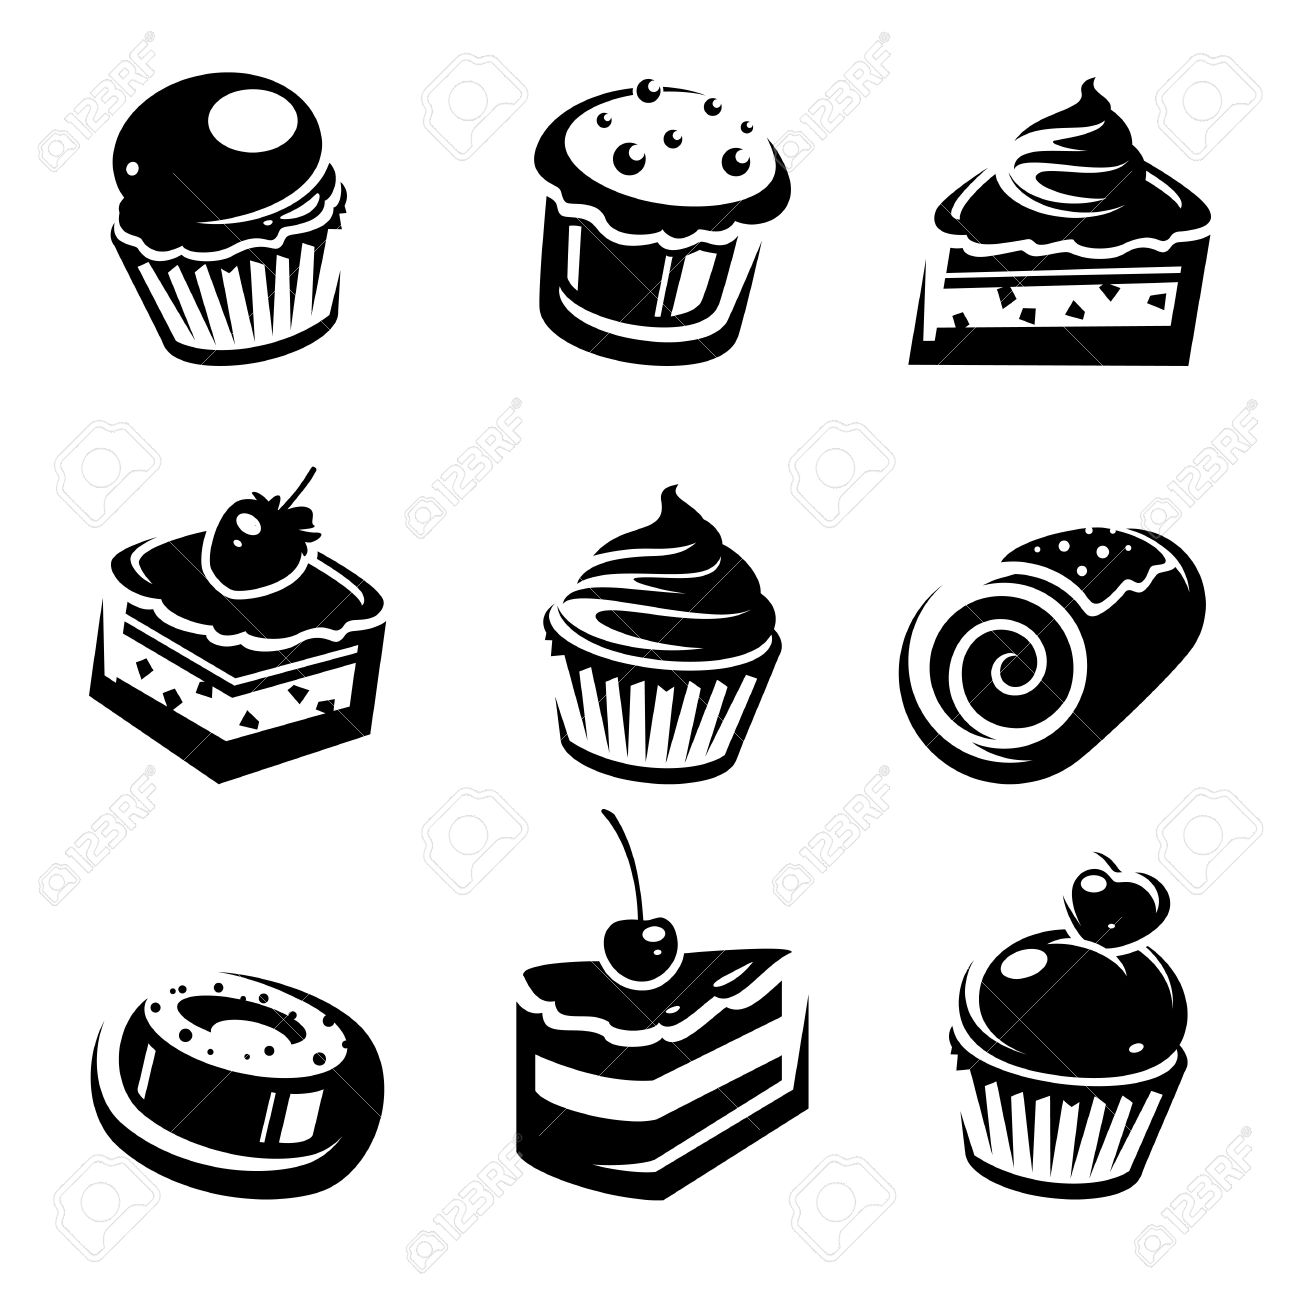 Cake Set Vector Royalty Free Cliparts Vectors And Stock